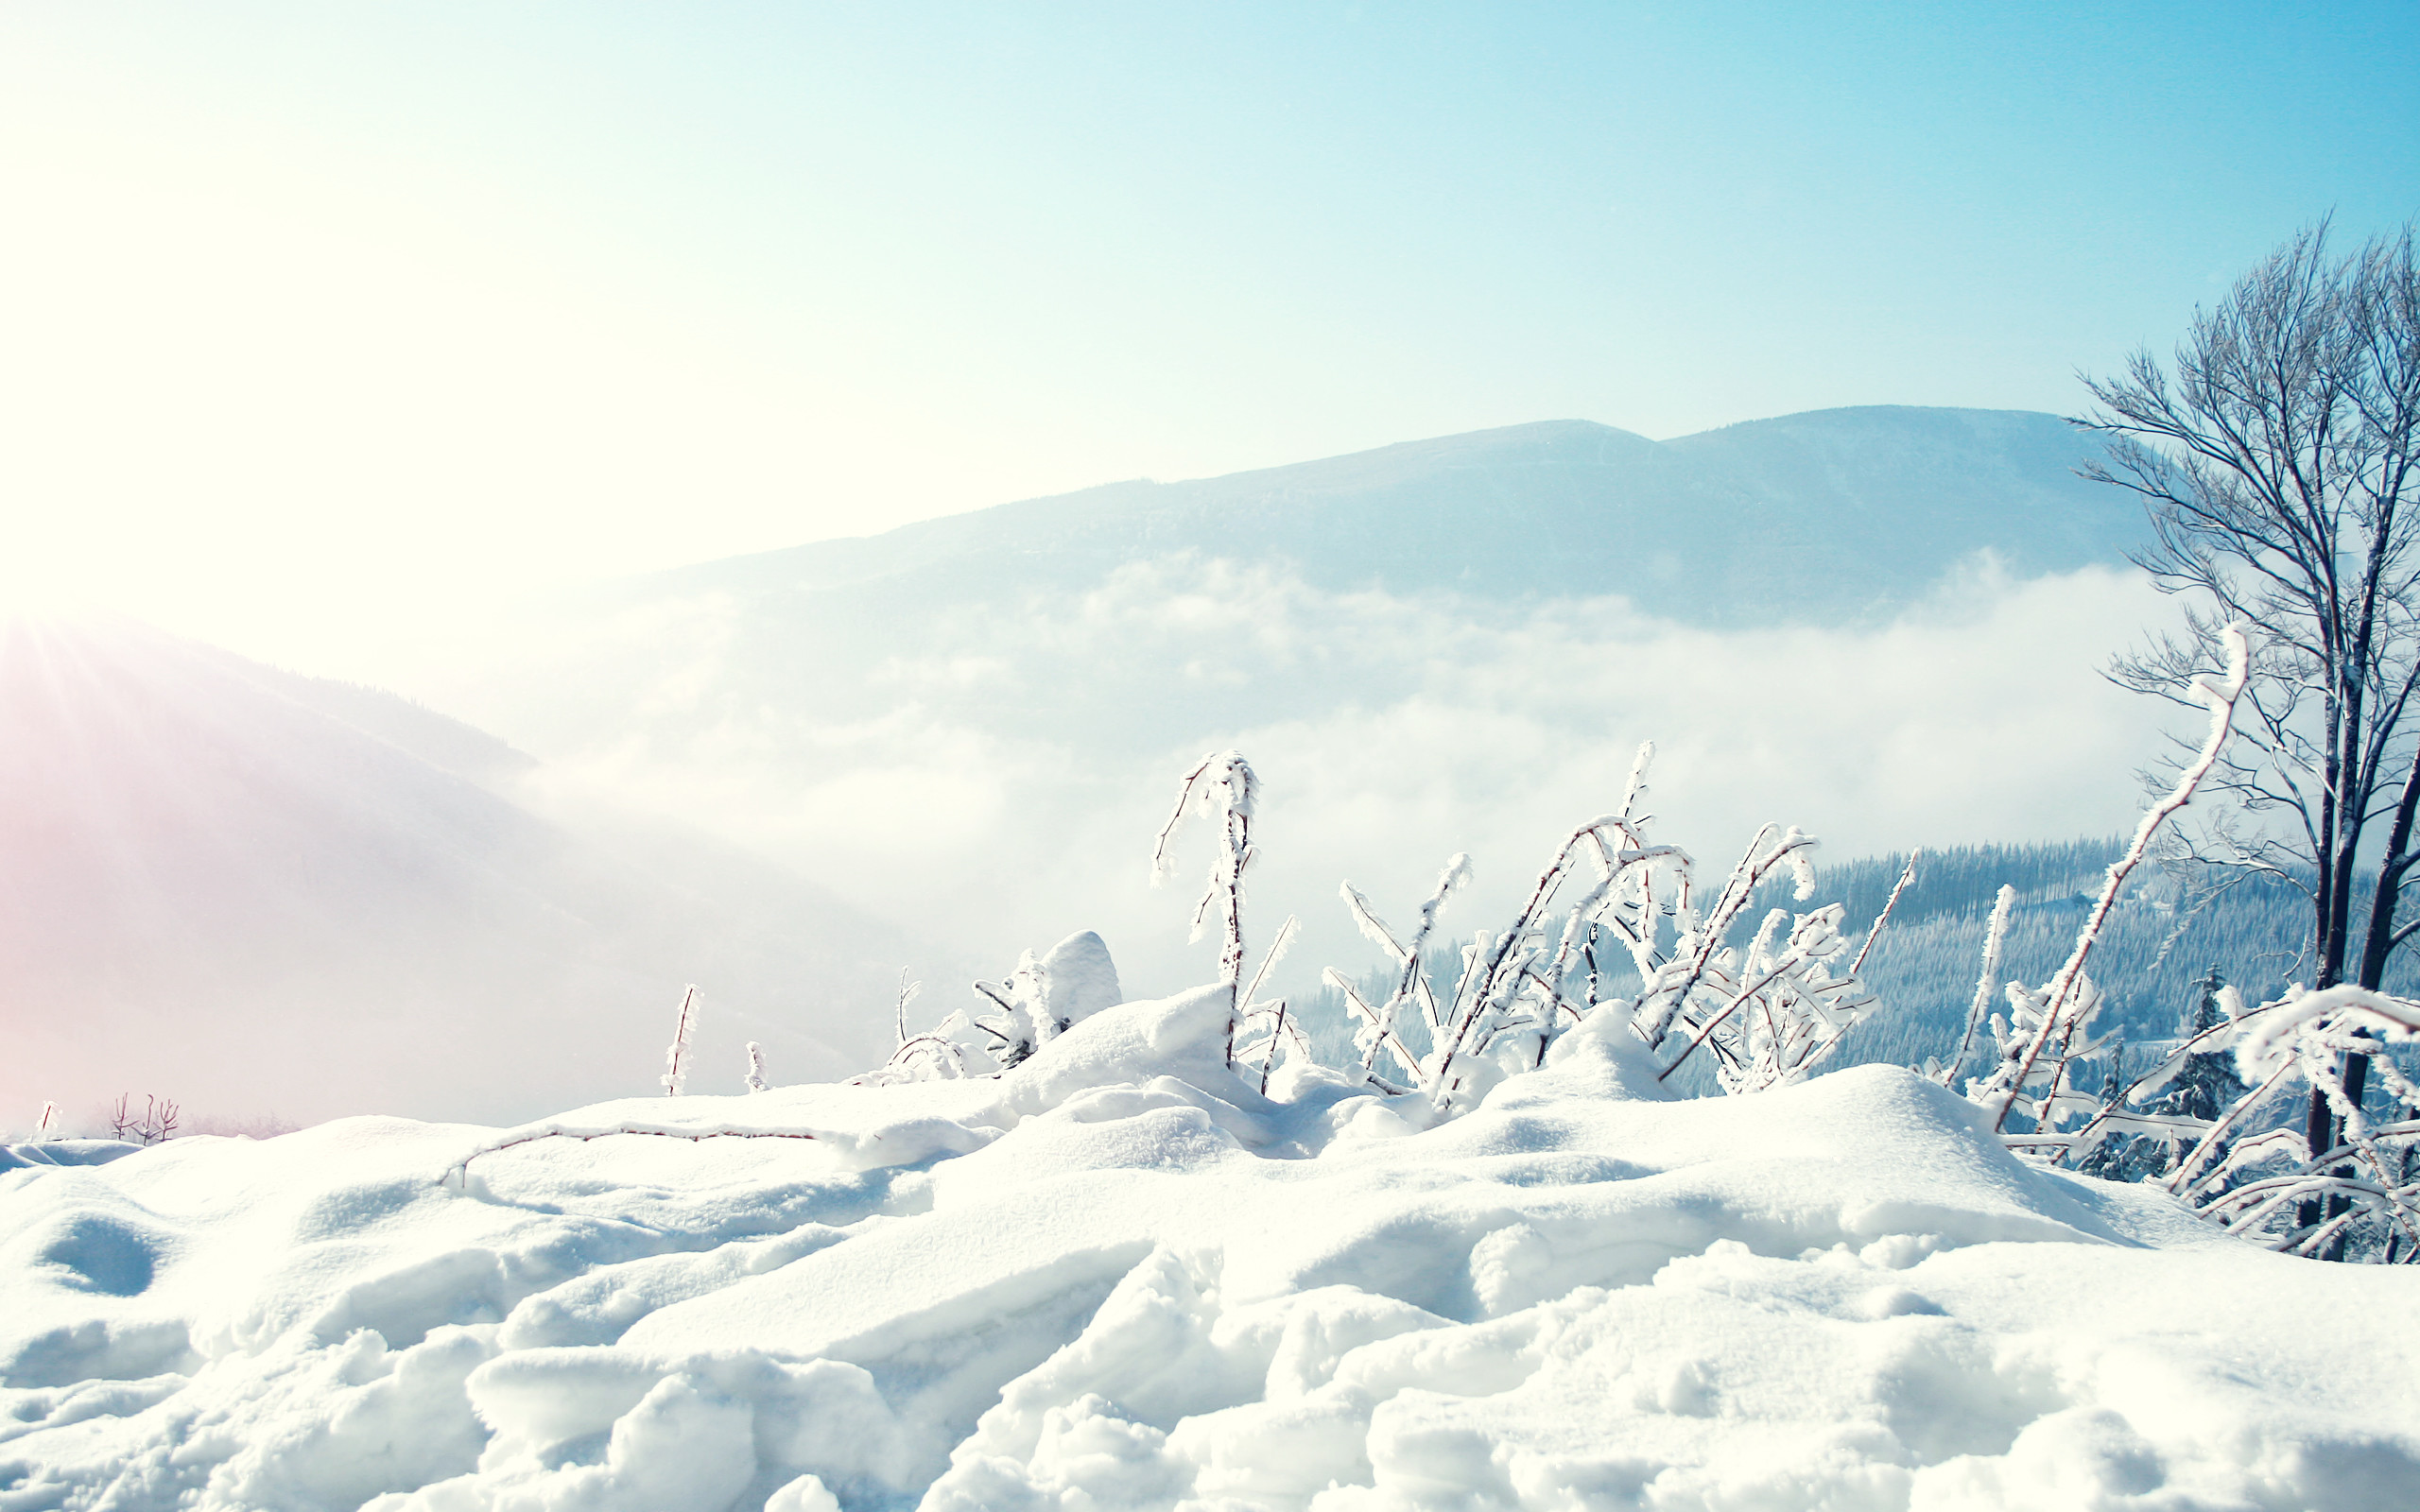 … snow scene hd wallpapers free download …